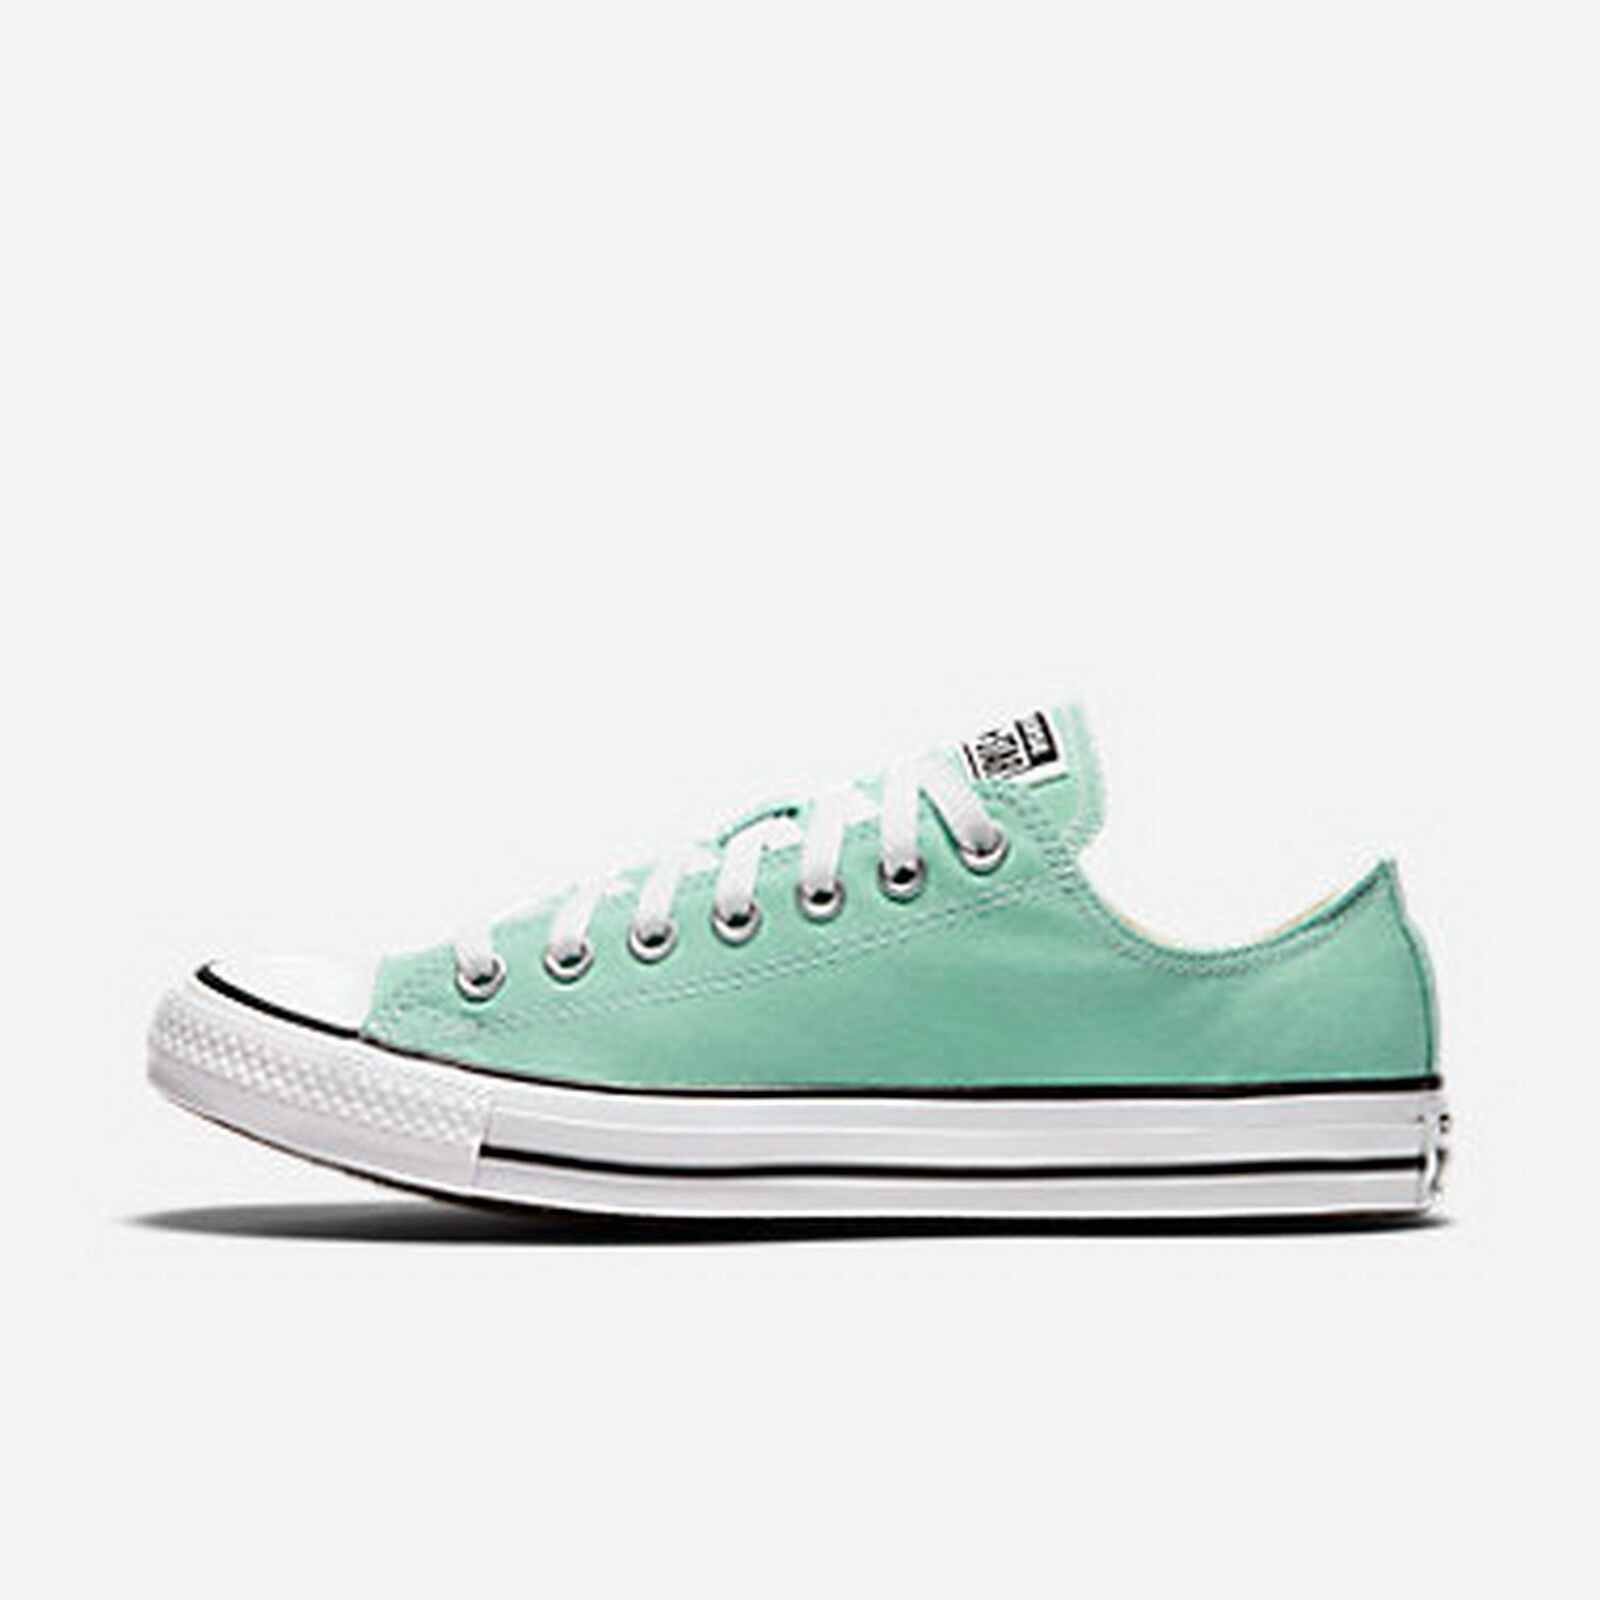 New Converse Chuck Taylor All Schuhes Star Niedrig Top Sneaker Schuhes All (UNISEX), M4/W6 29a901